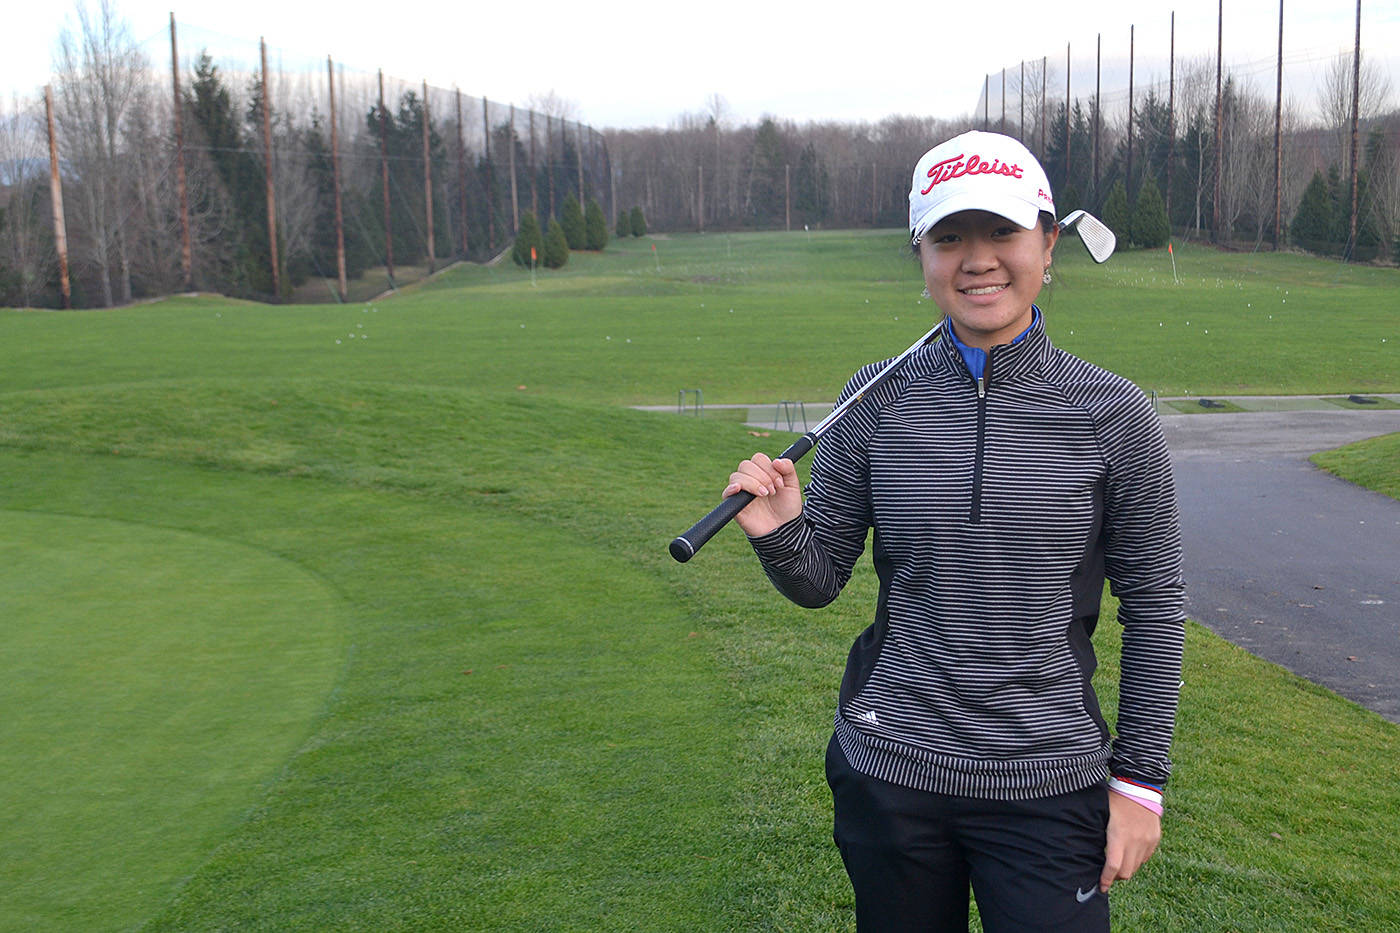 Morgan Creek golfer Susan Xiao is gearing up for a busy 2018 golf season after an impressive string of accomplishments this past year. (Nick Greenizan photo)